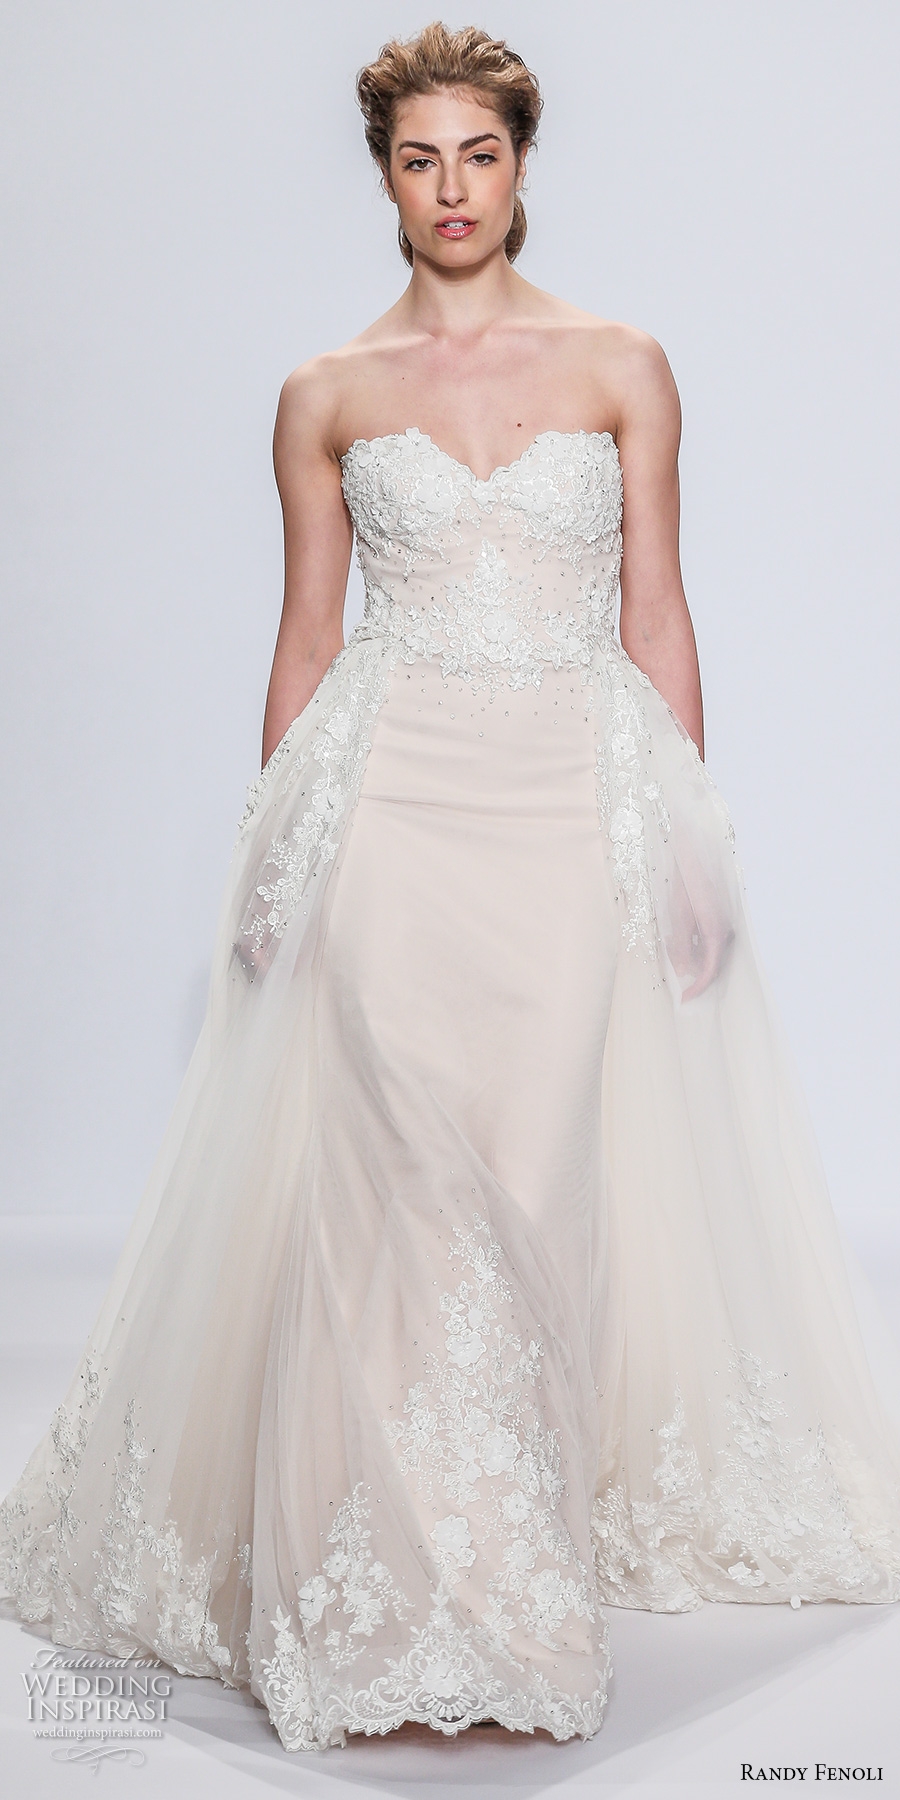 Randy Fenoli Bridal Spring 2018 Wedding Dresses New York